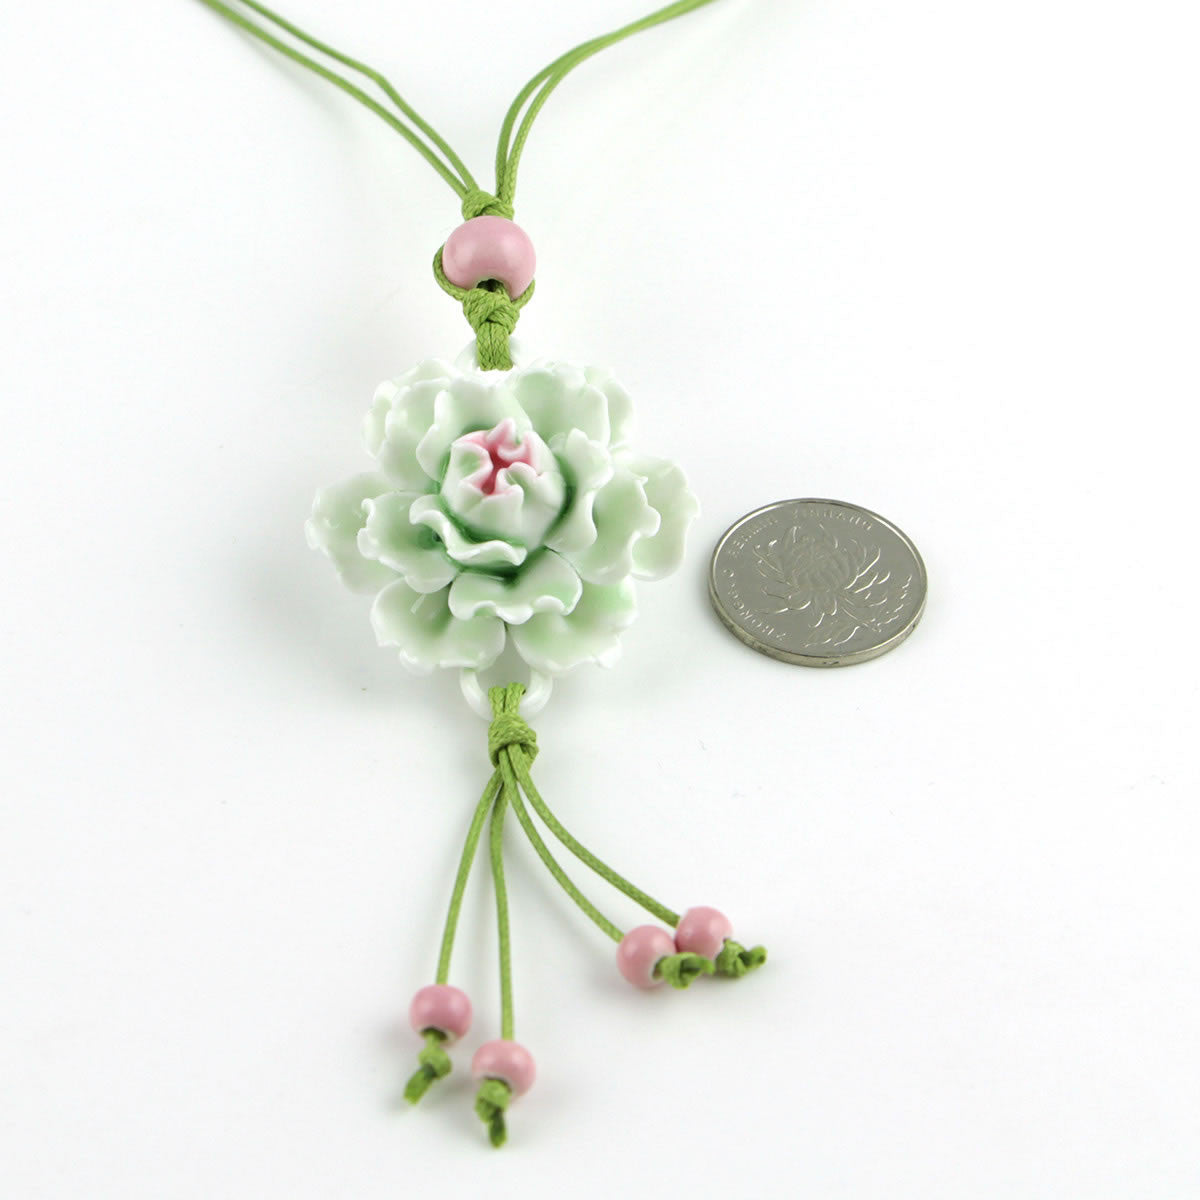 Handmade peony porcelain necklace as sweater decoration